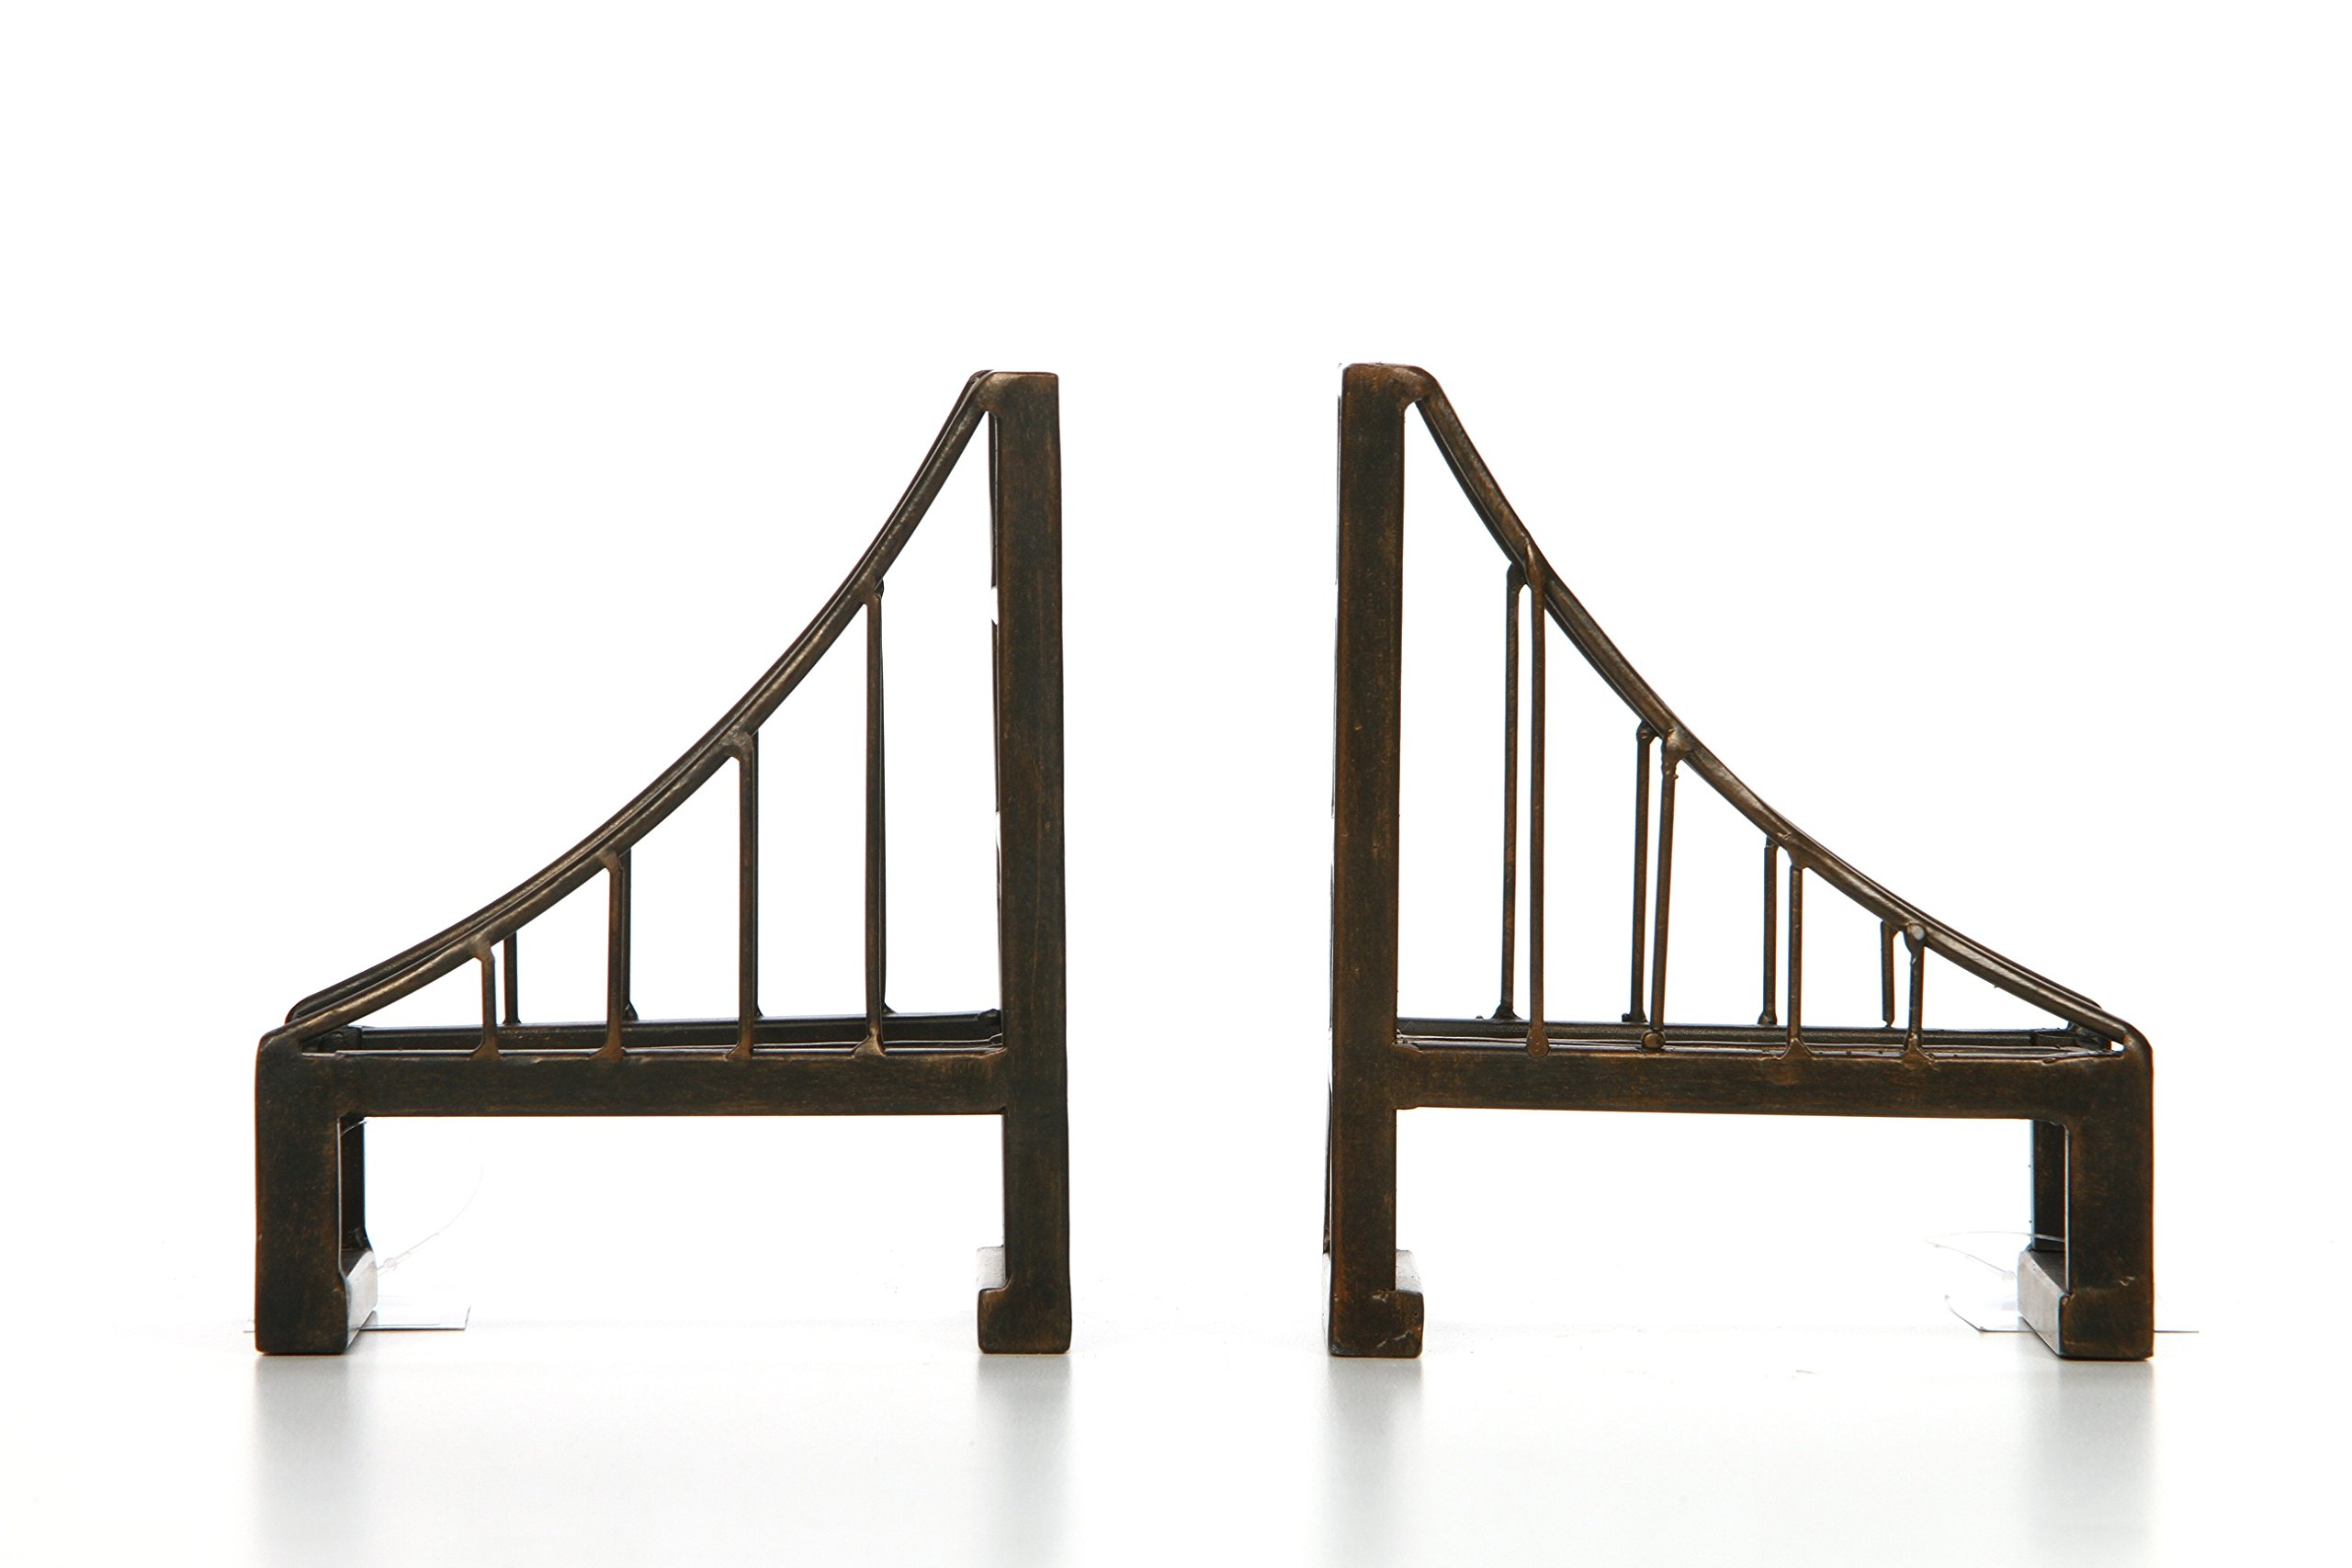 Hosley's Set of 2-6'' High, Decorative Tabletop Bridge Bookends, Brown. Ideal Gift for Wedding, Home, Party Favor, Spa, Reiki, Meditation, Bathroom Settings O3